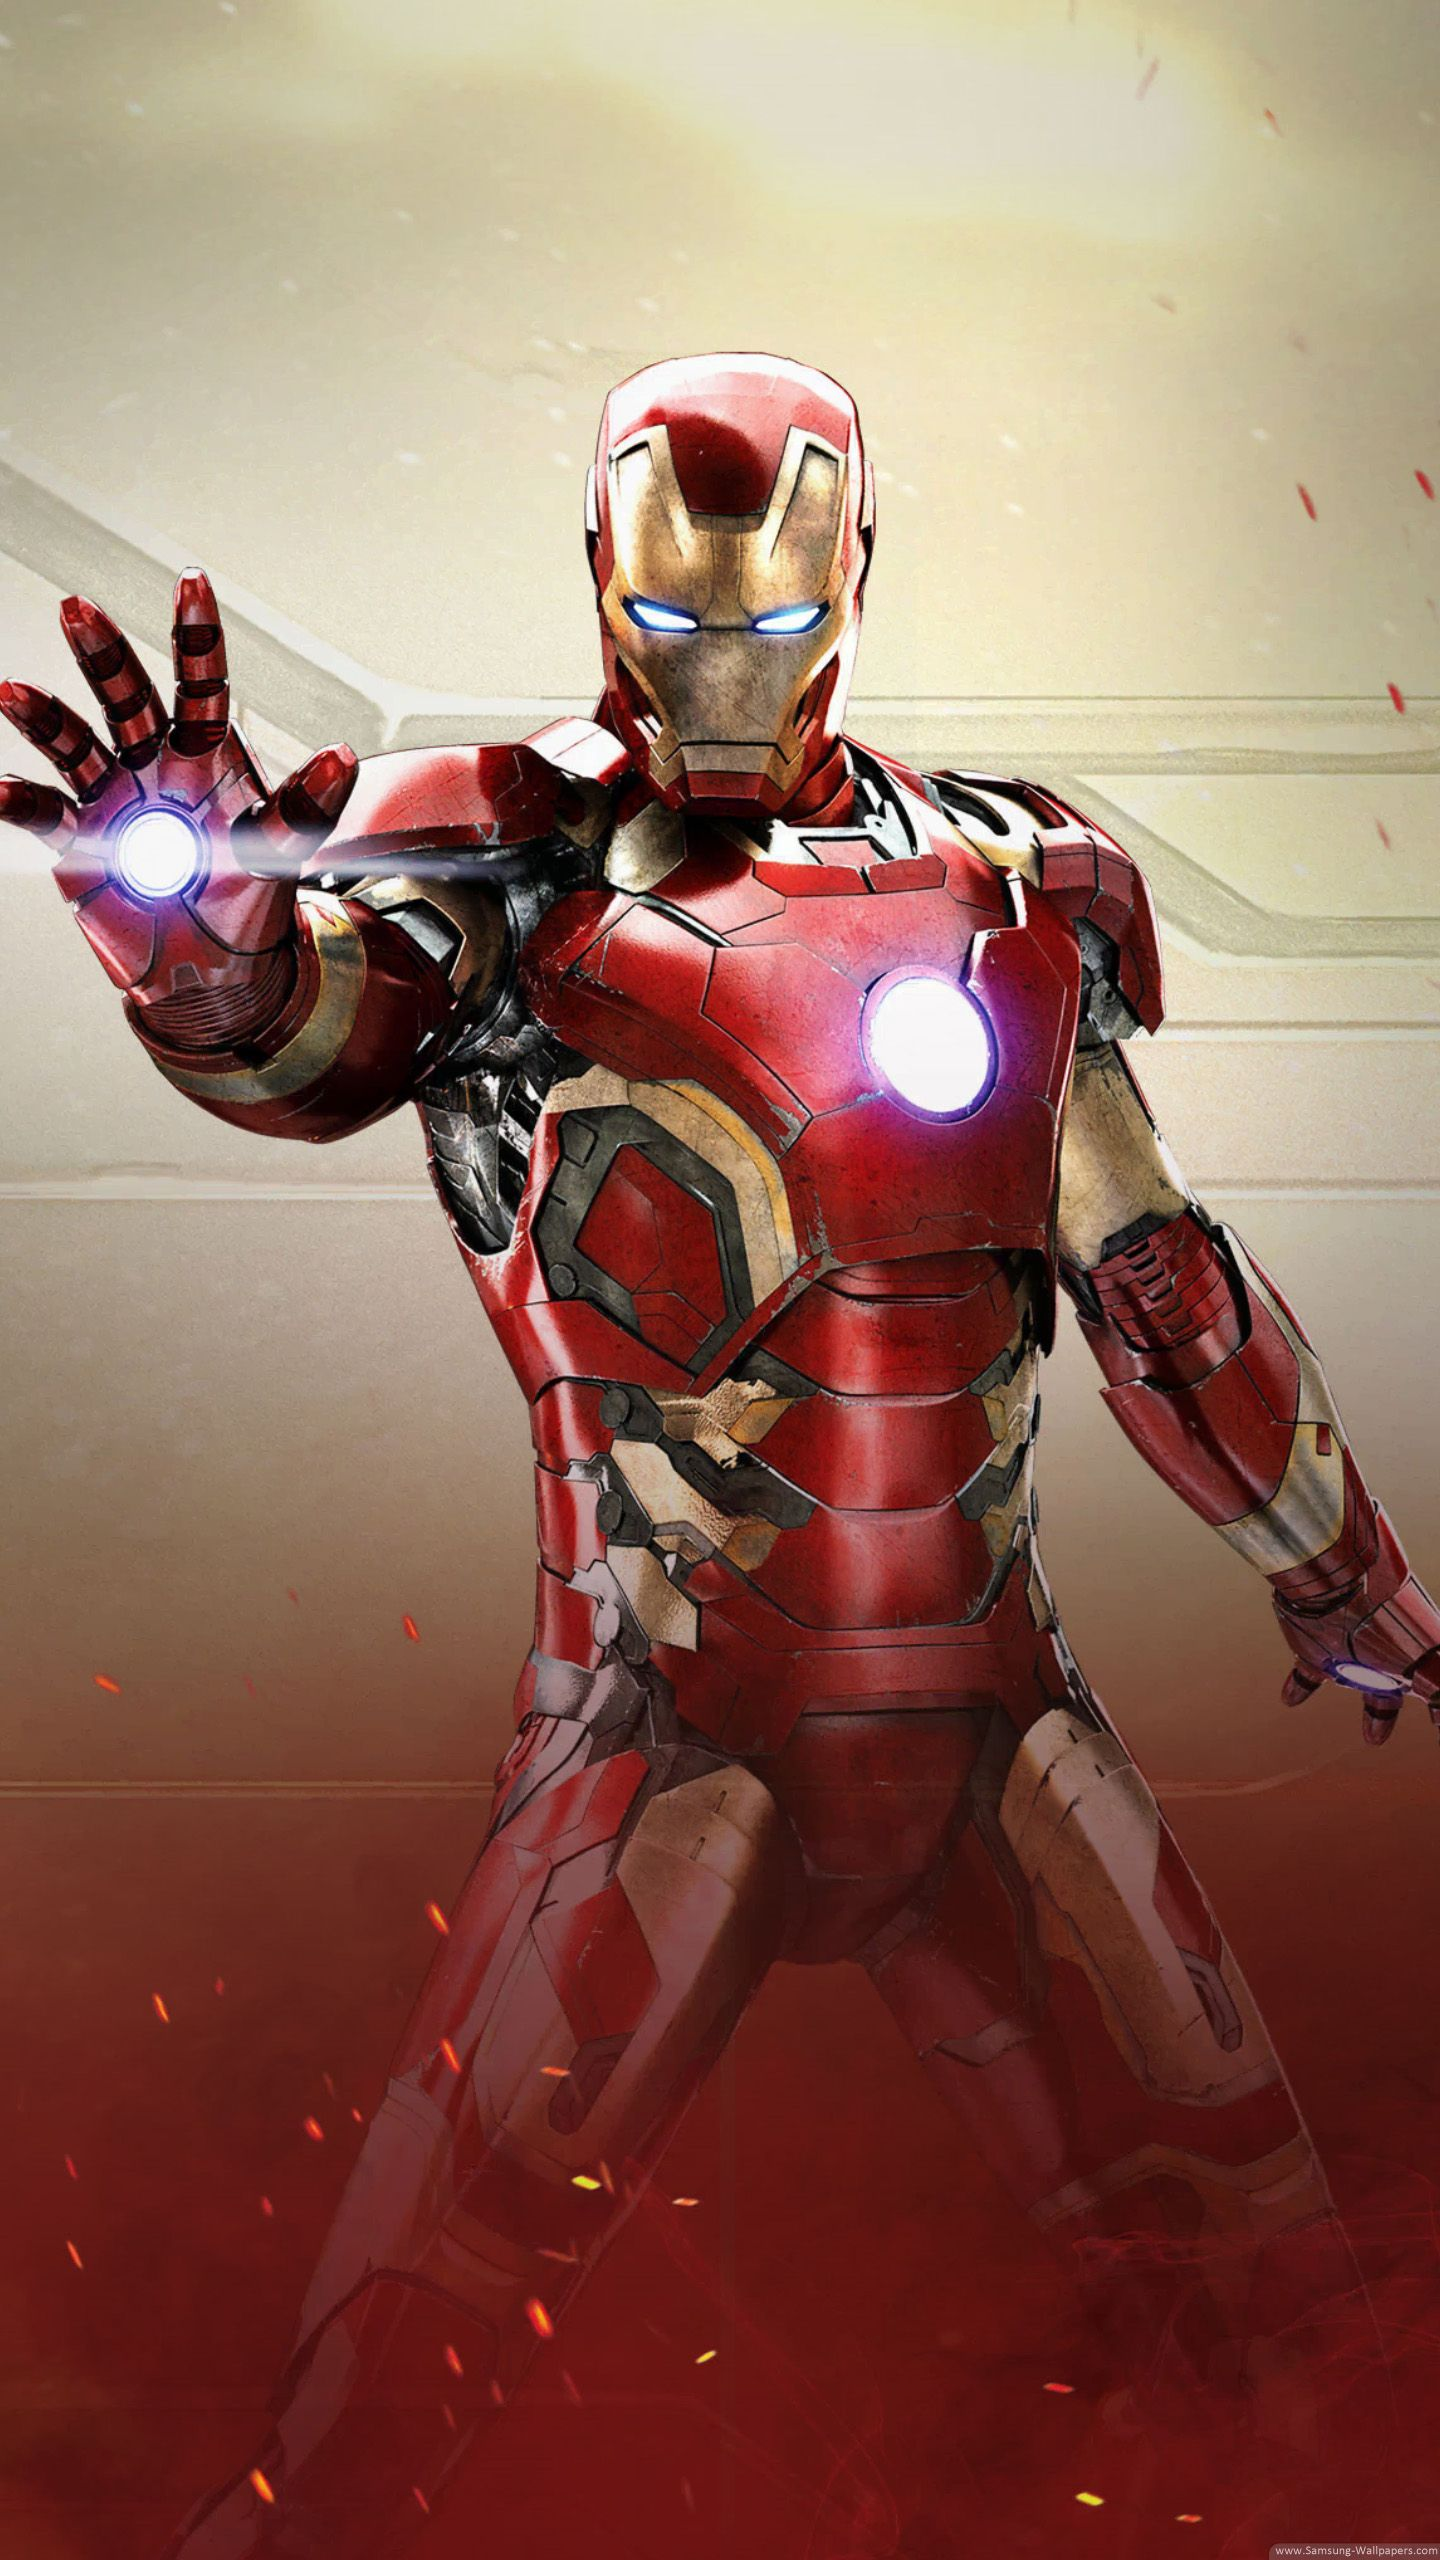 Iron Man Hd Desktop Wallpaper Widescreen High Definition